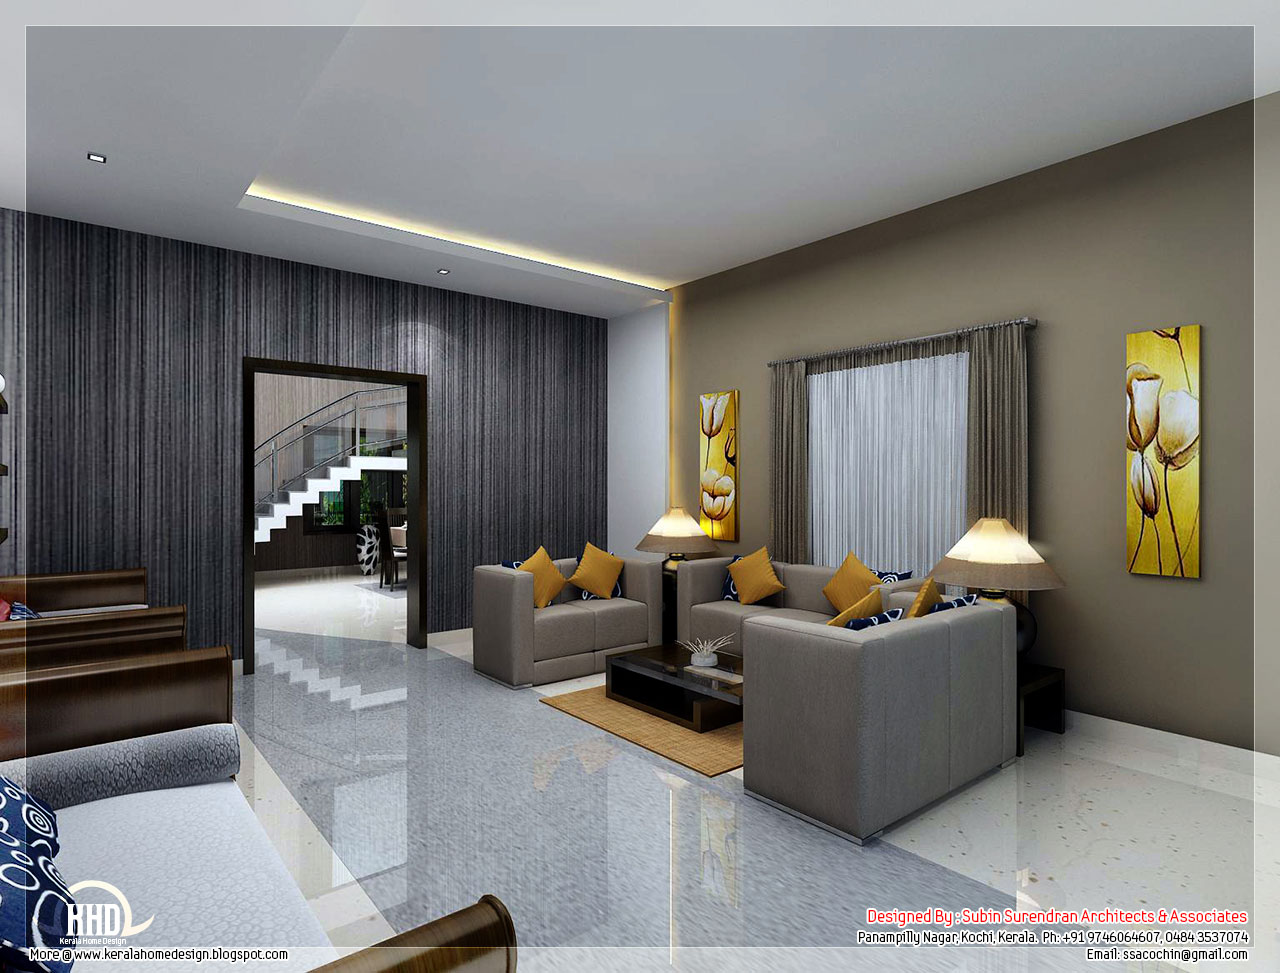 Awesome 3d interior renderings kerala home design and floor plans New ideas in home design